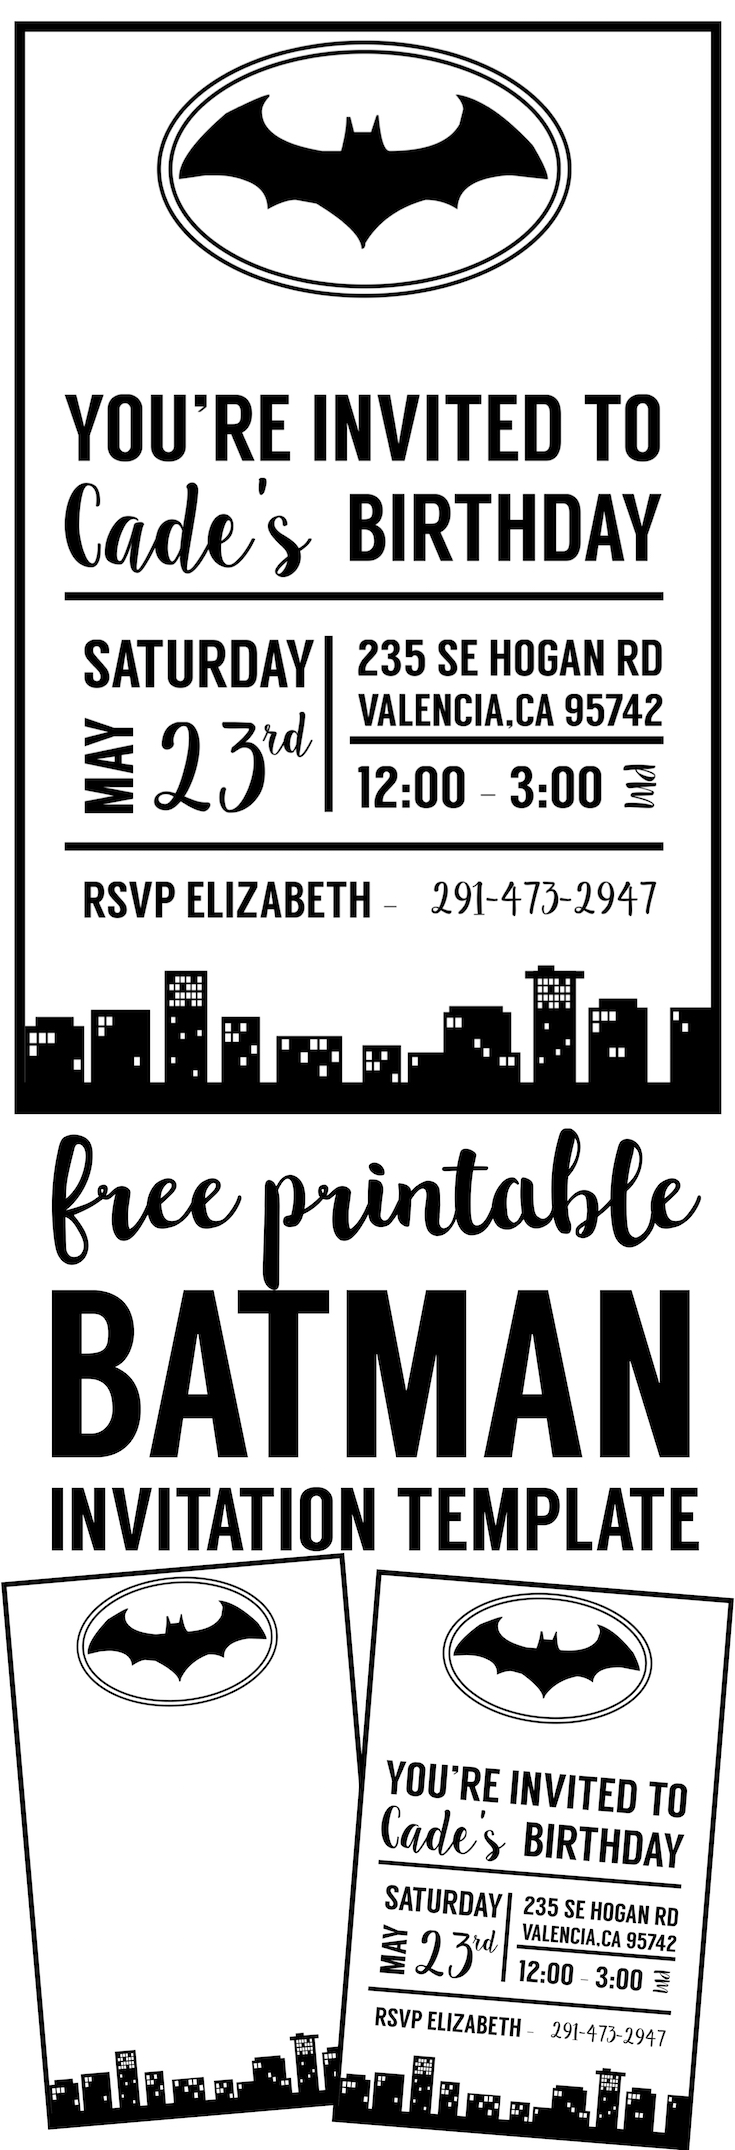 Free Batman Invitation Template - Paper Trail Design